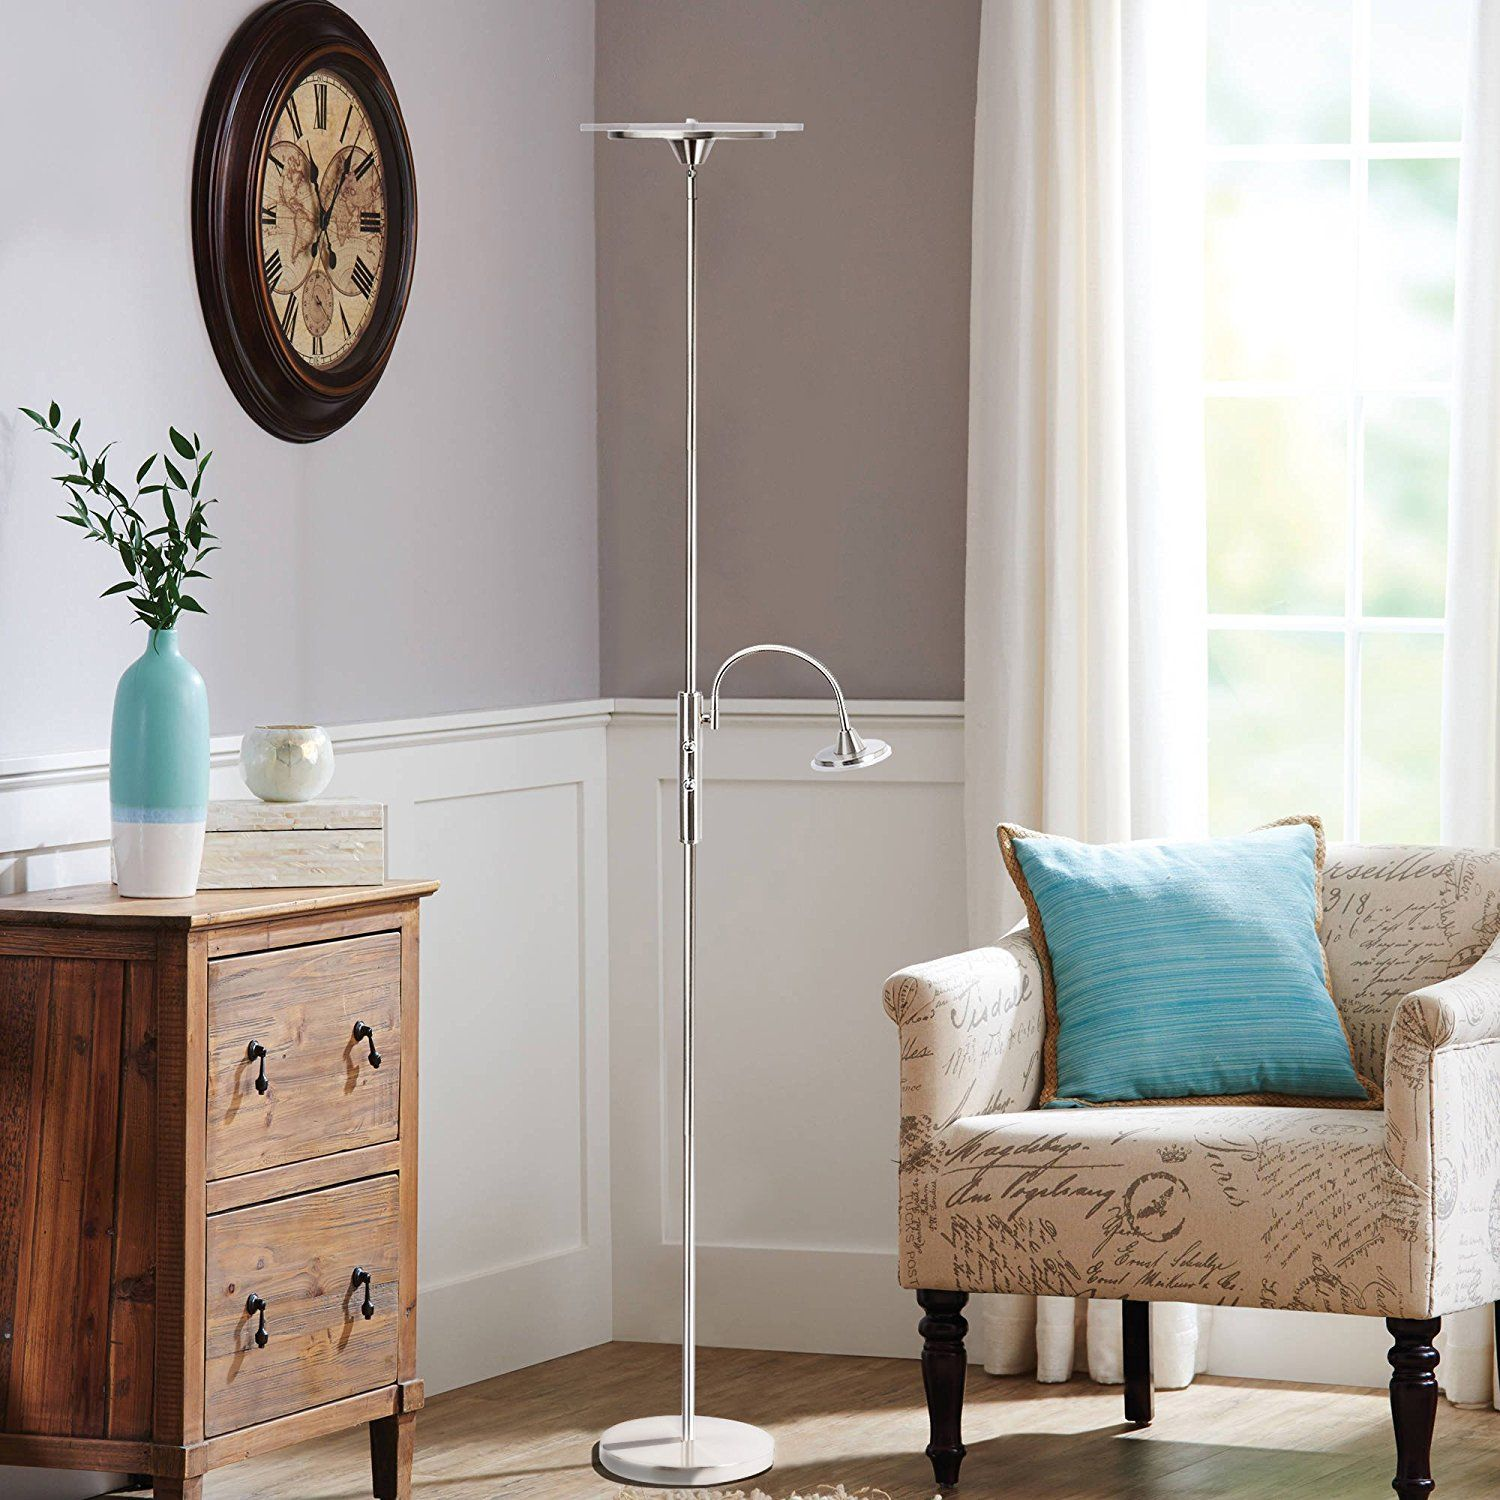 Pakfung LED Floor Lamp with Reading Light, 11 Inch 11W Dimmable